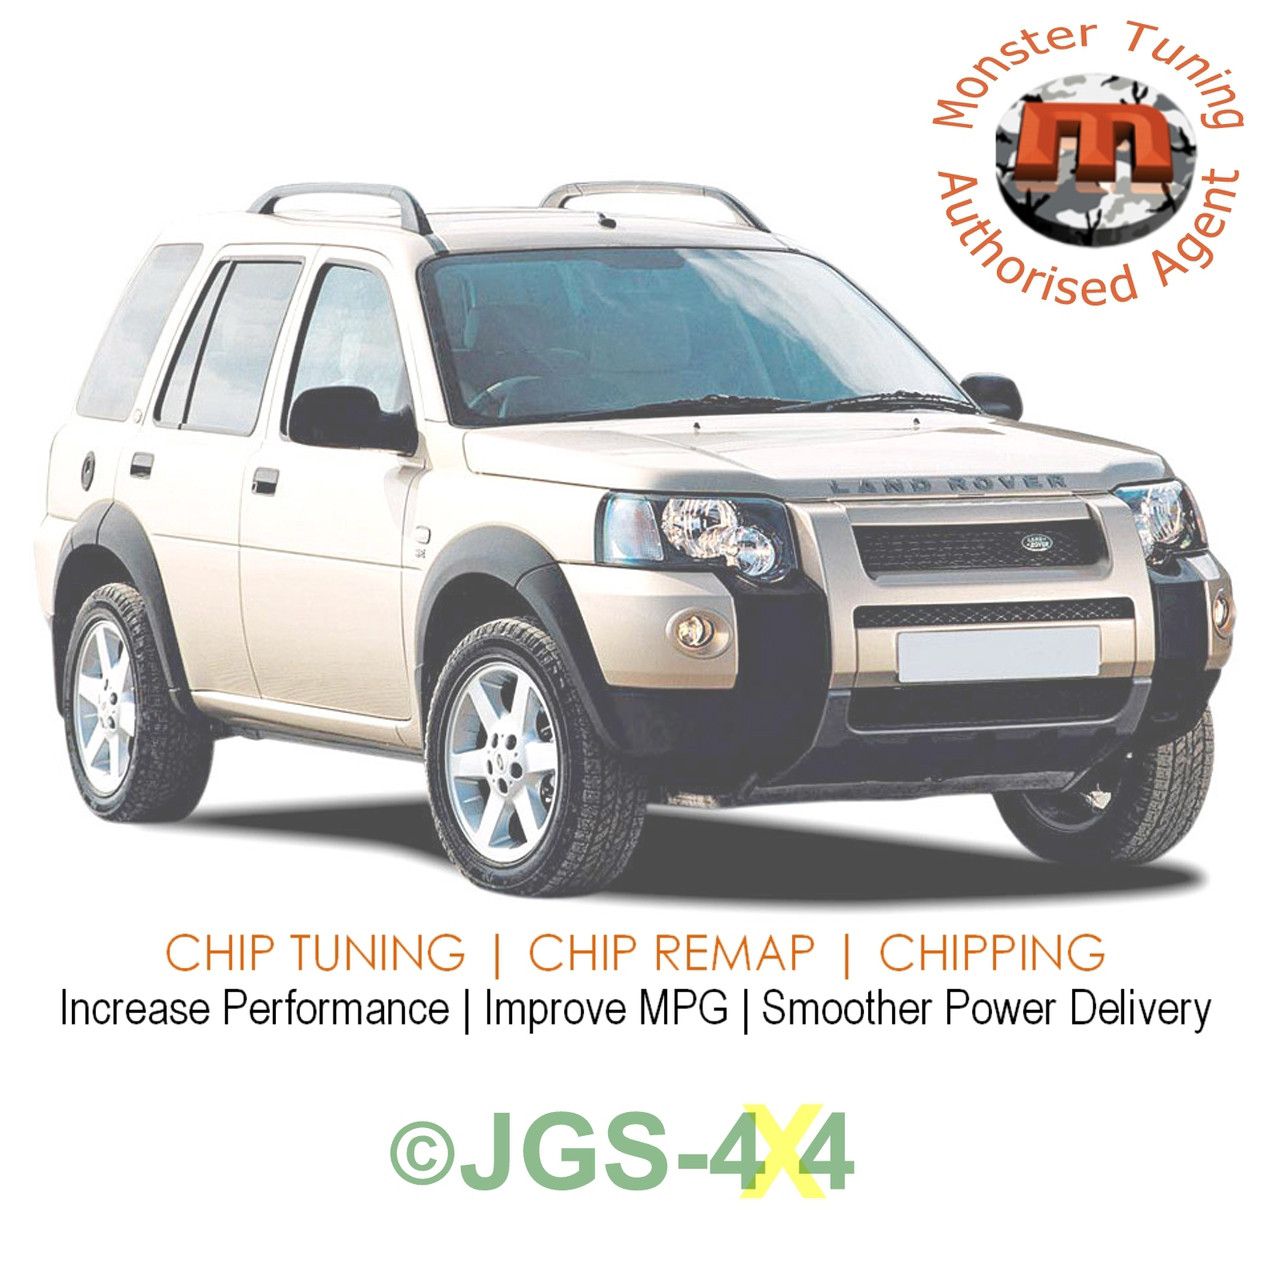 Freelander 1 TD4 Monster Tuning Remap Performance Engine Tune